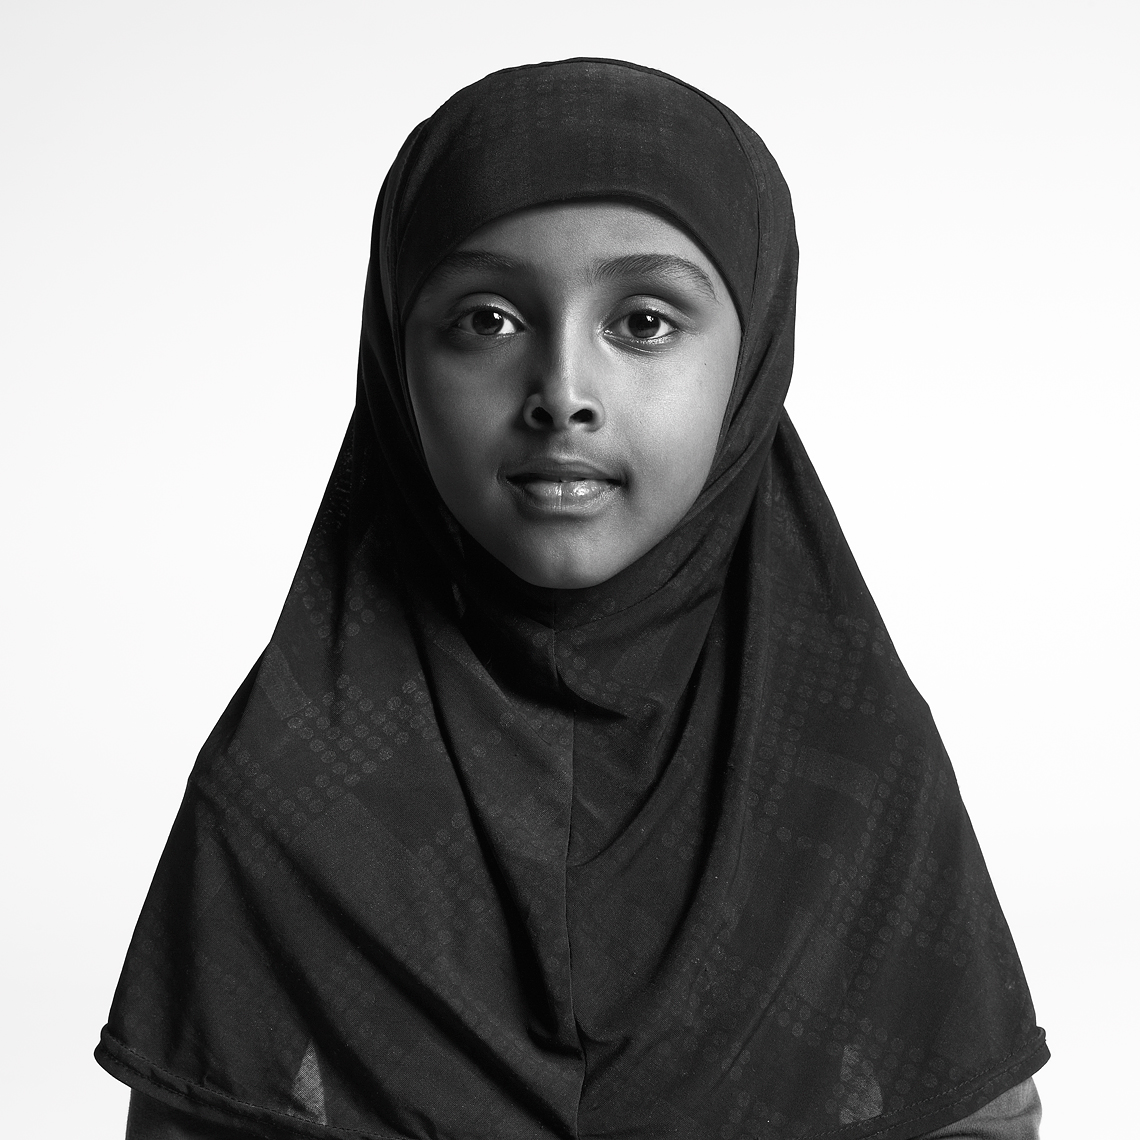 African American Girl in black hijab_black and white portrait